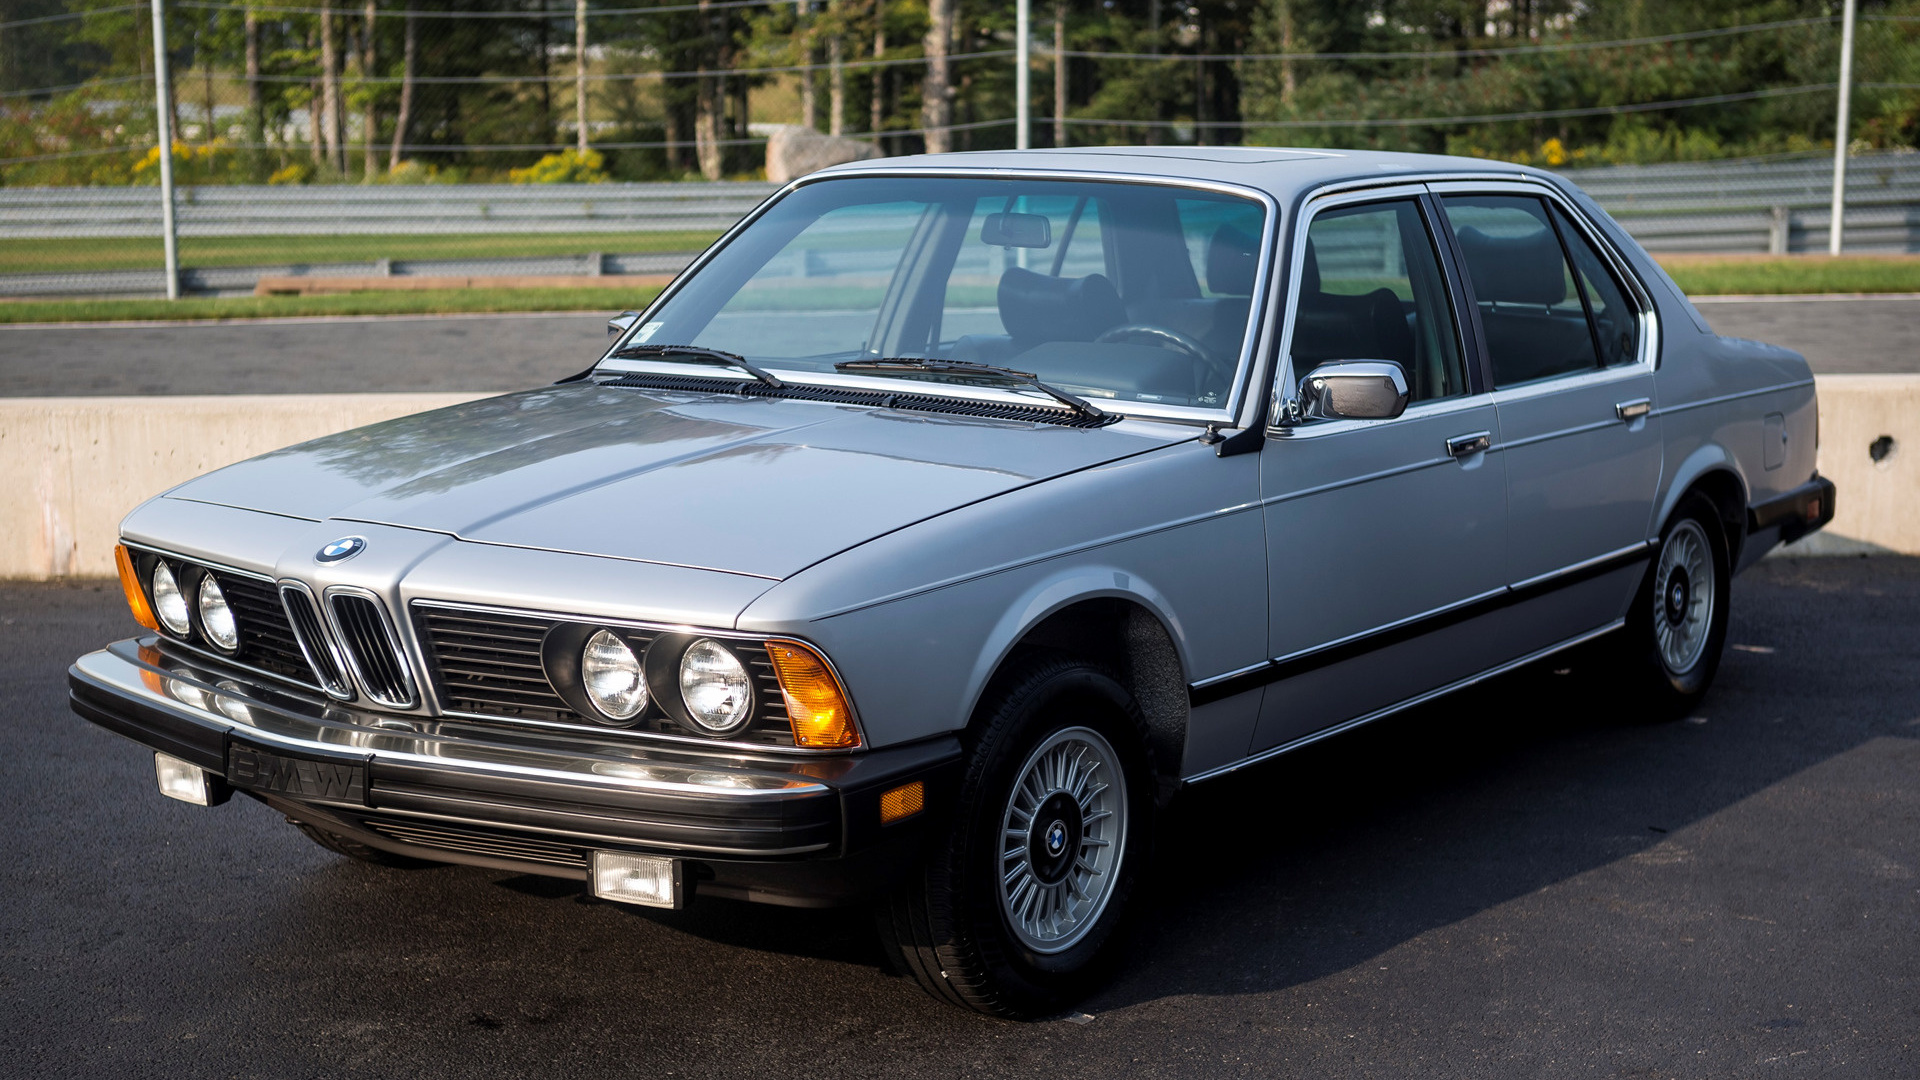 1978 bmw 7 series us wallpapers and hd images car pixel 1978 bmw 7 series us wallpapers and